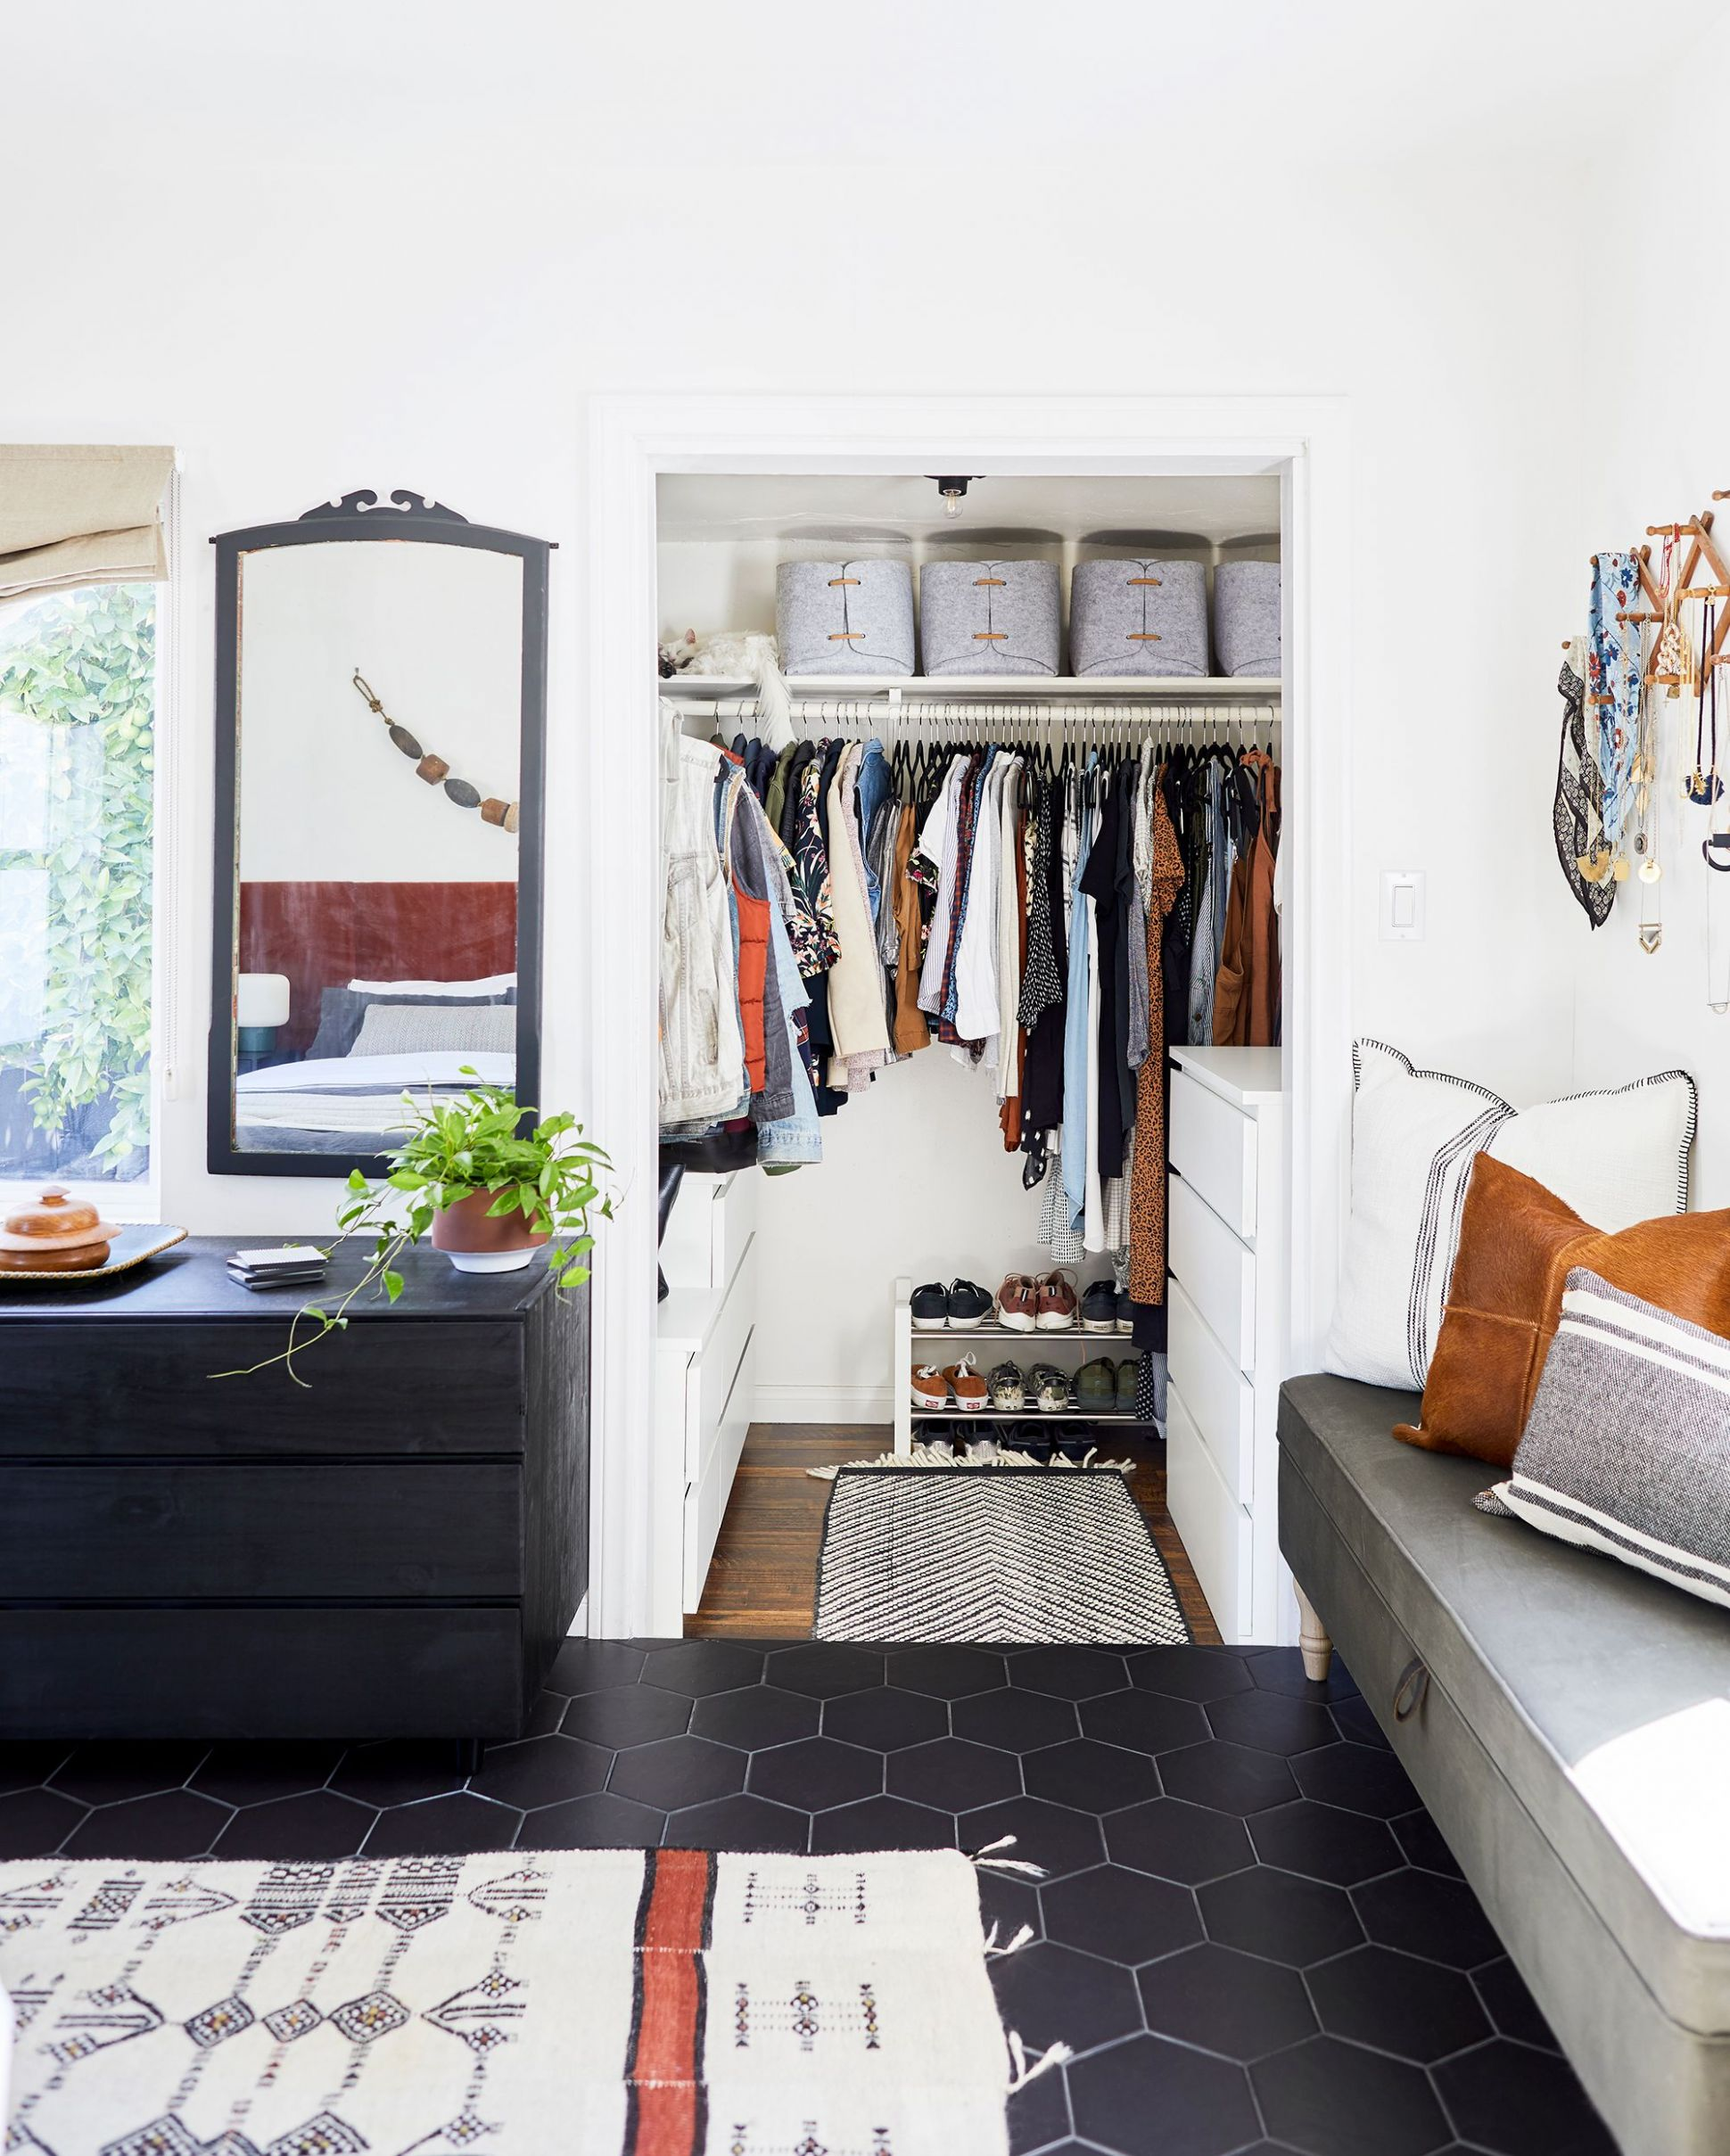 8 Best Small Closet Organization Ideas - Storage Tip for Small ...